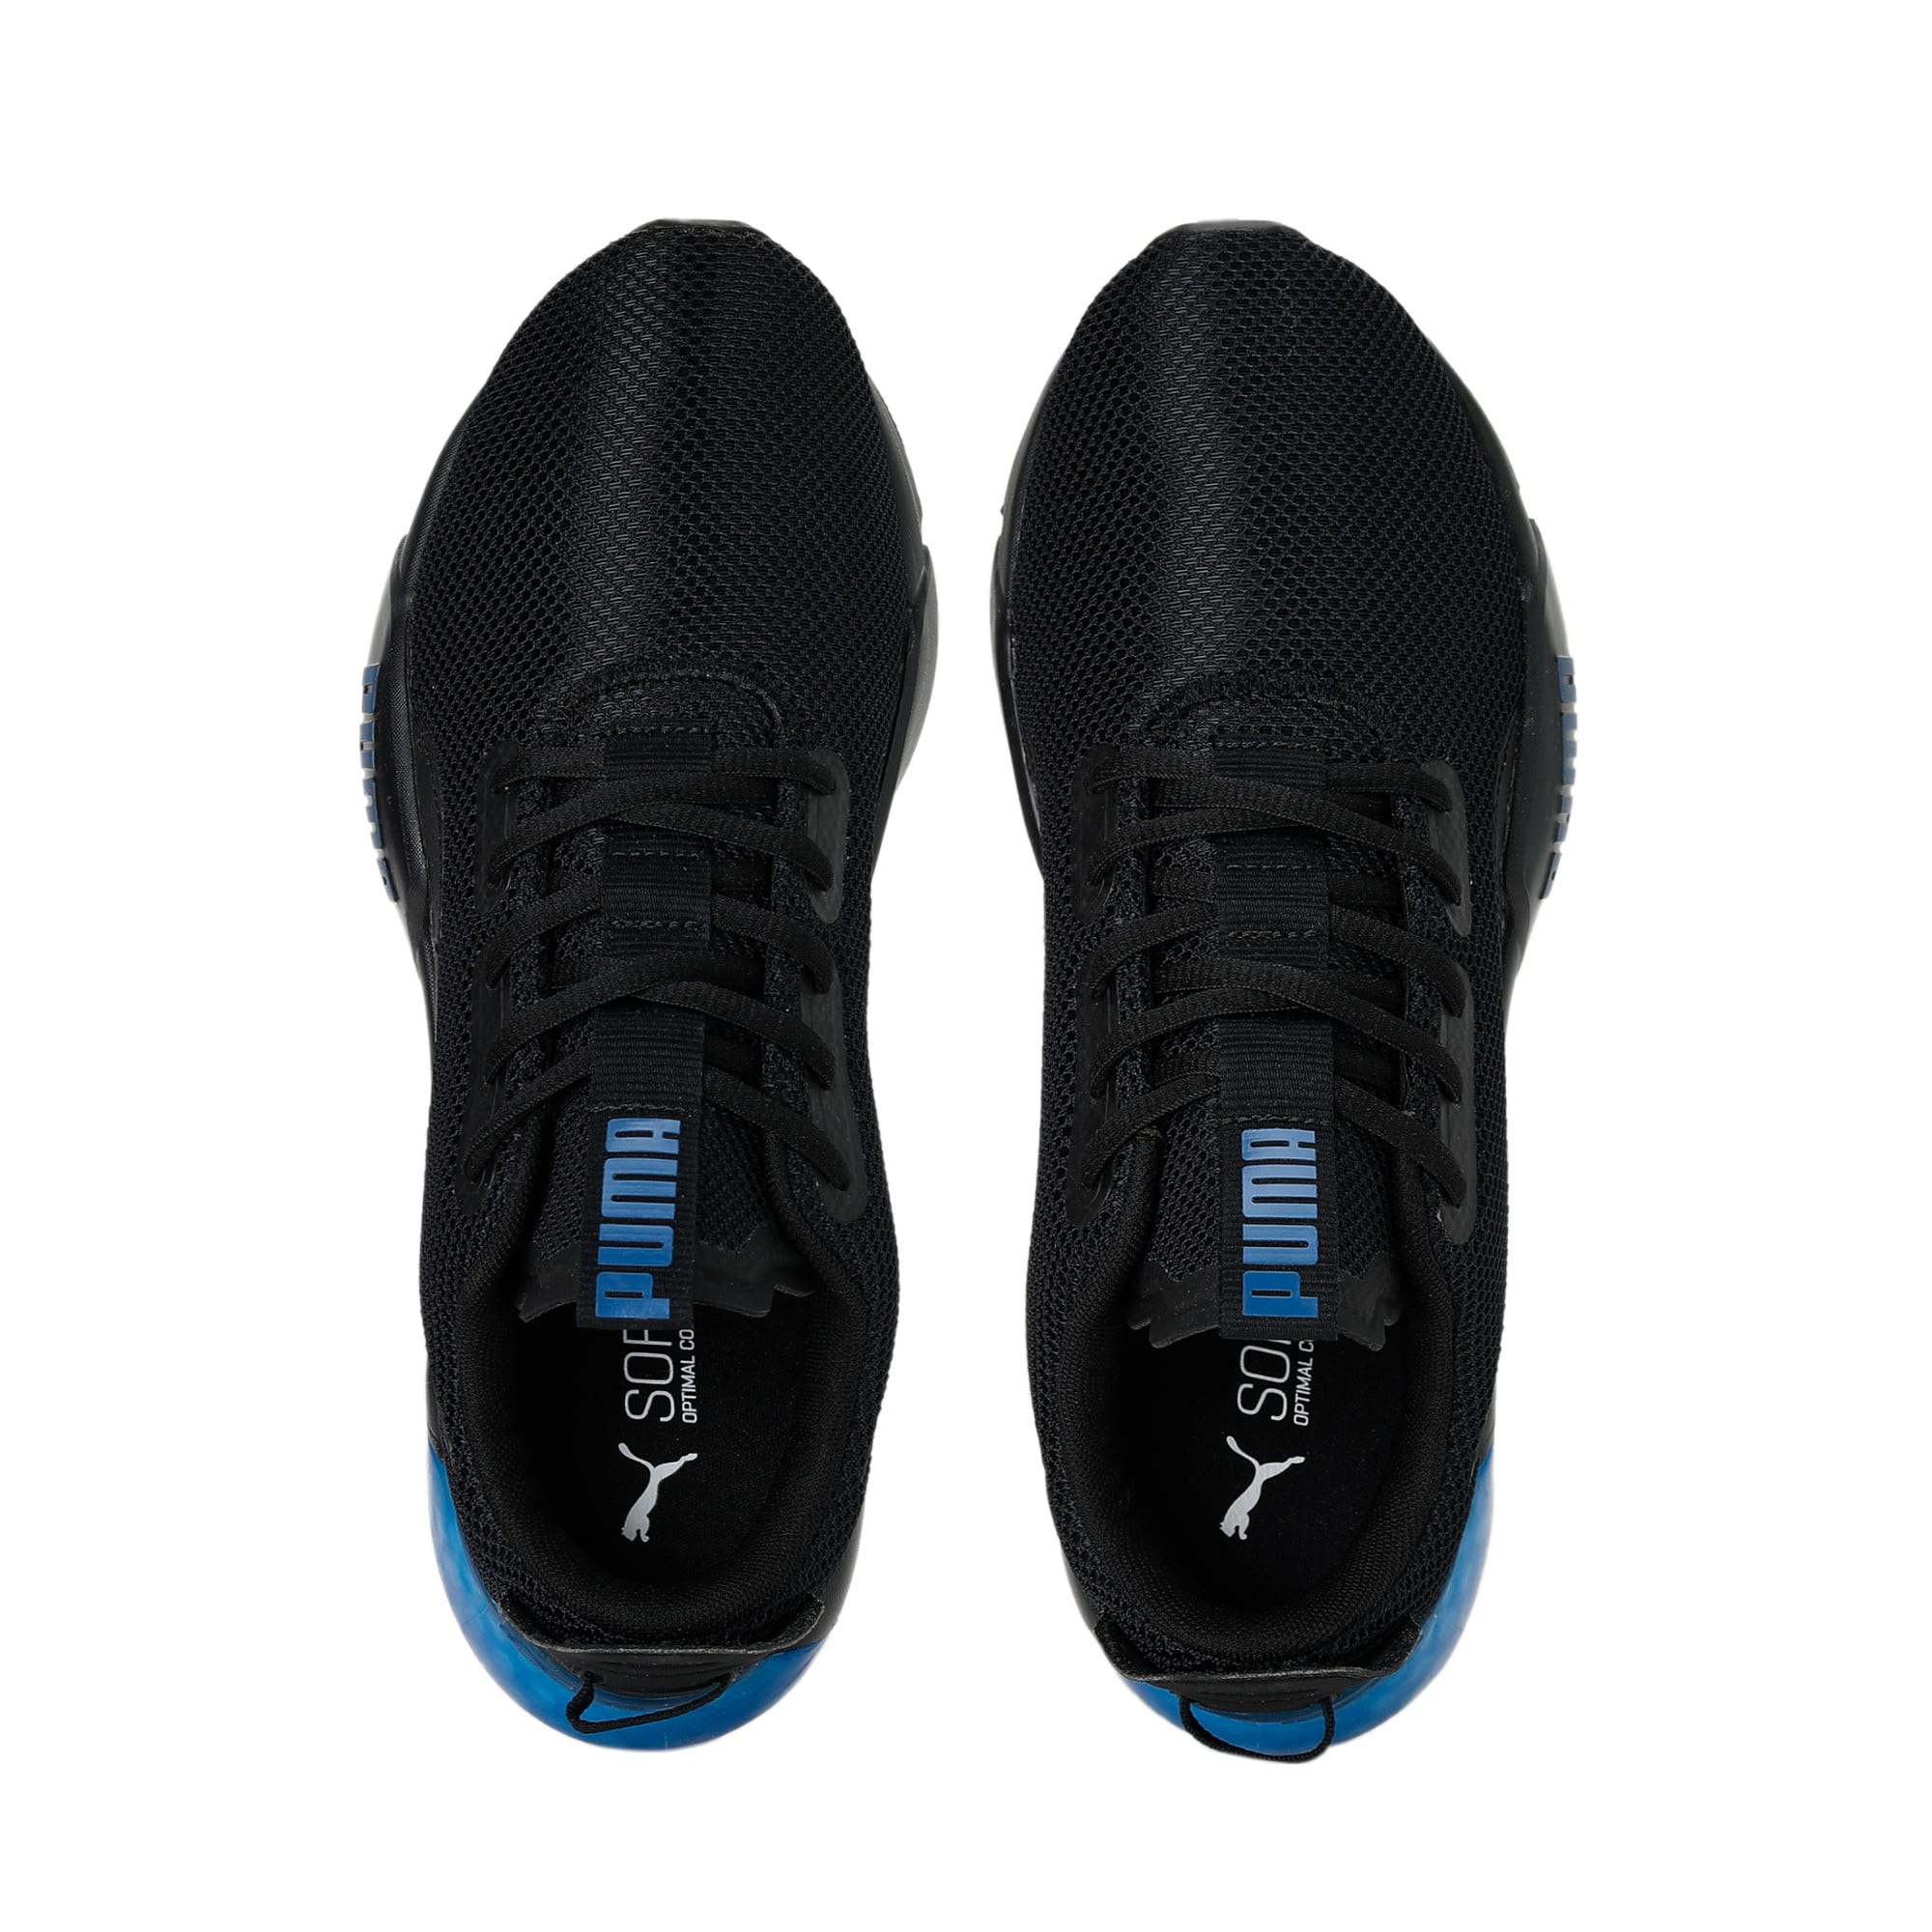 Thumbnail 8 of CELL Phase Men's Running Trainers, Puma Black-Galaxy Blue, medium-IND